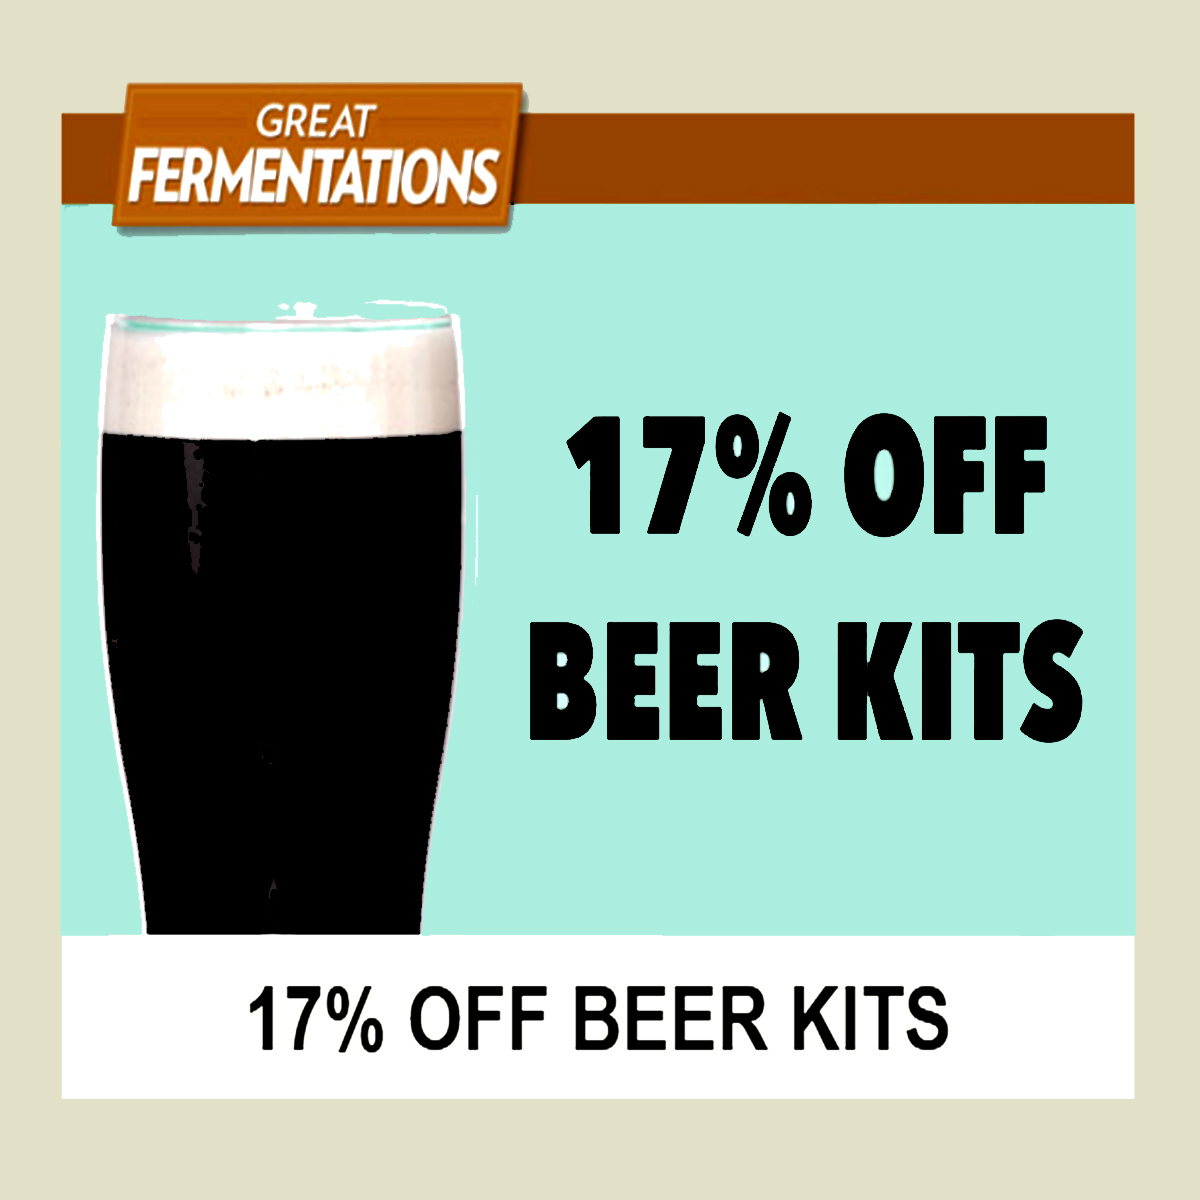 Save 17% on Beer Kits at Great Fermentations with this Greatfermentations.com Coupon Code